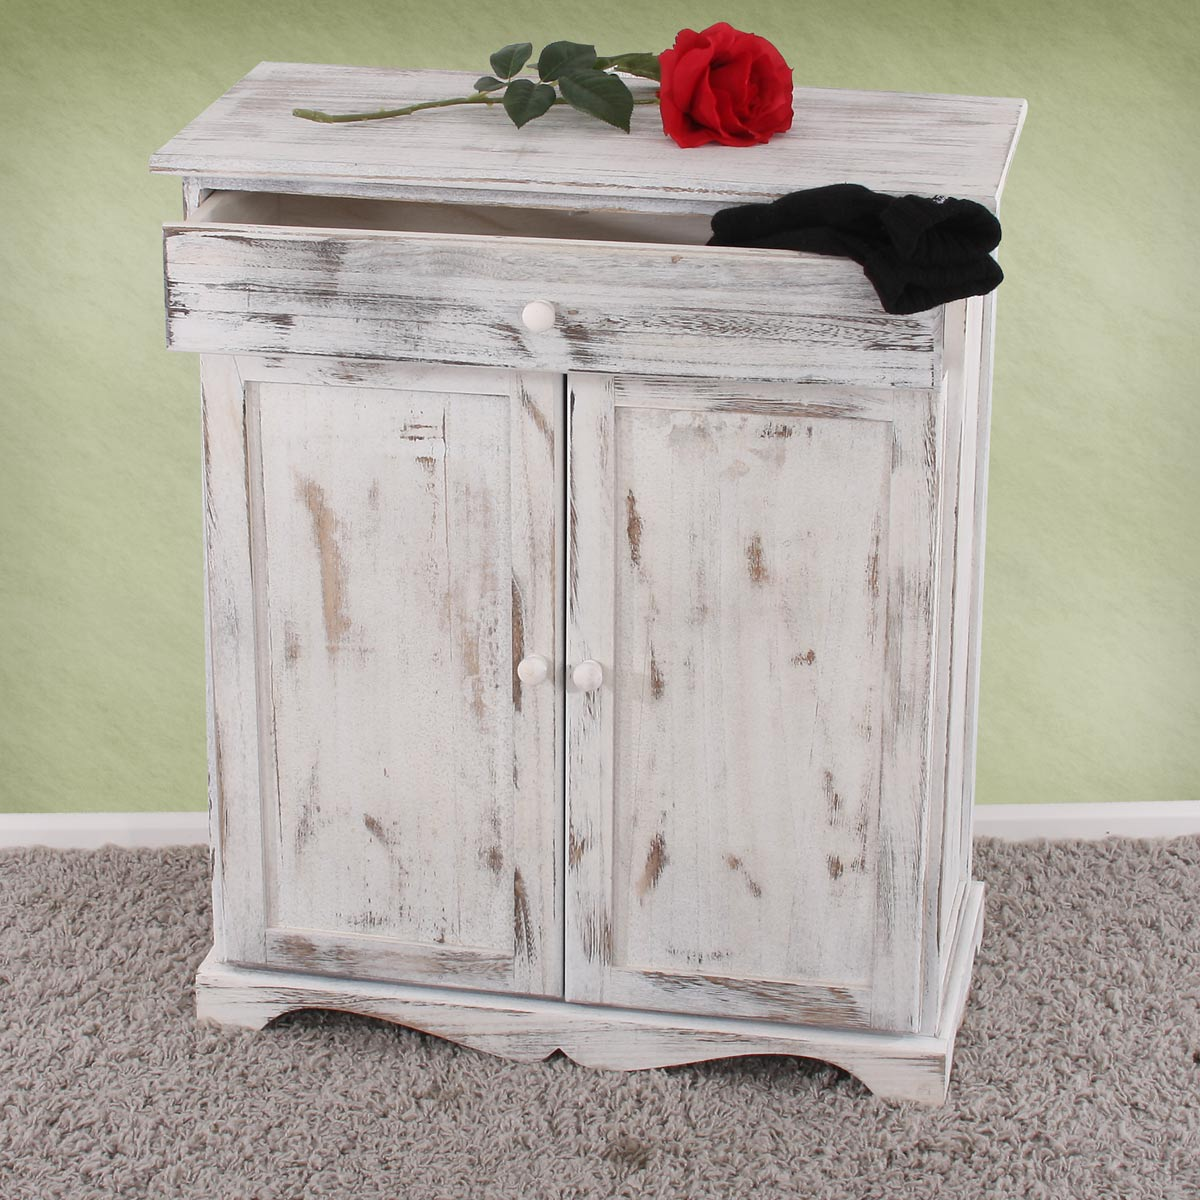 commode table d 39 appoint armoire 66x33x78cm shabby vintage gris blanc marron ebay. Black Bedroom Furniture Sets. Home Design Ideas